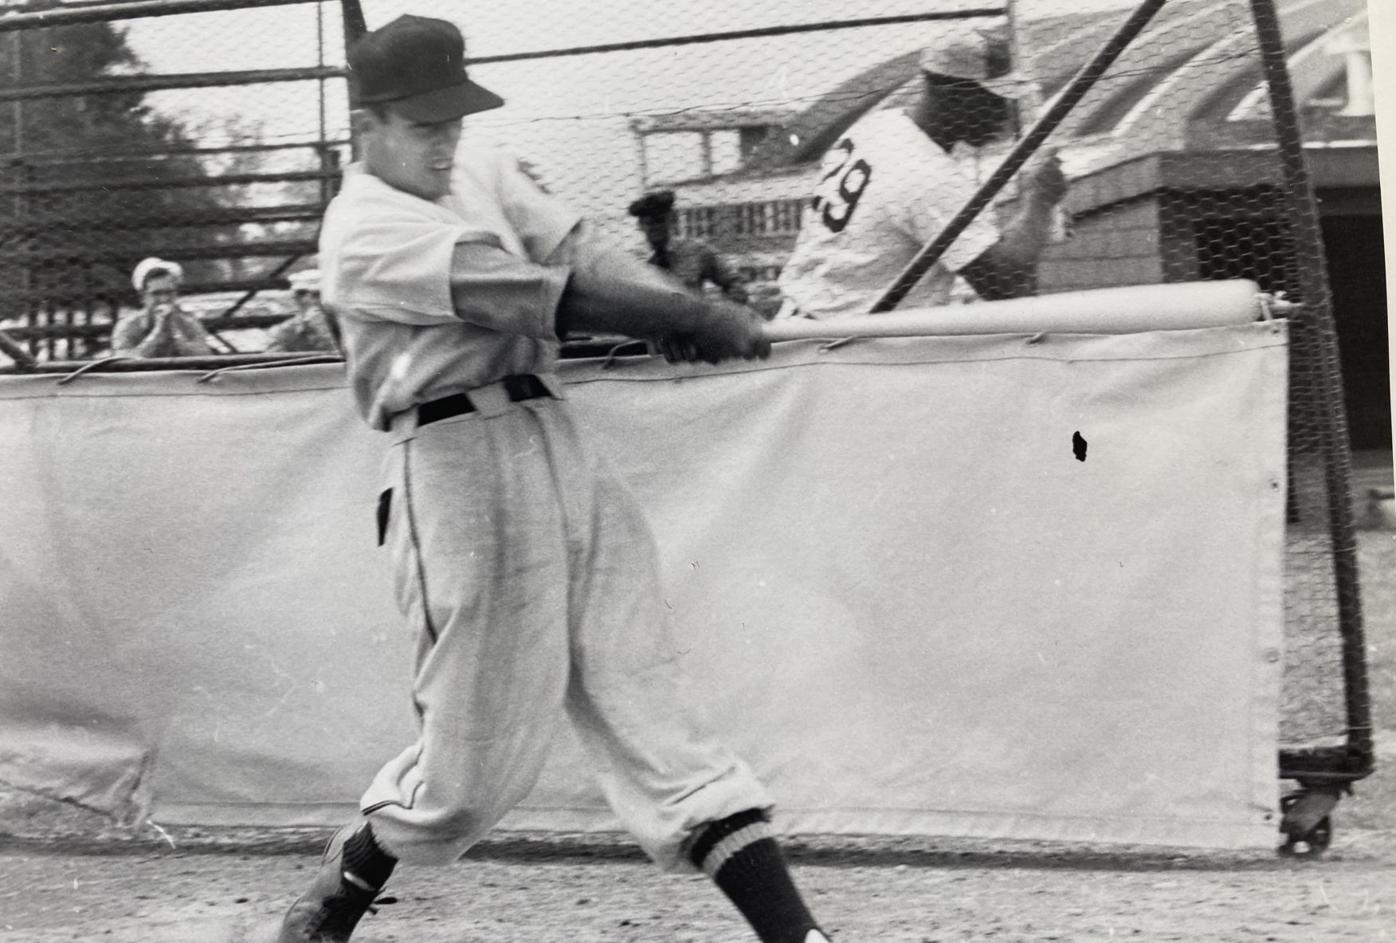 The day Pvt. Willie Mays threw out my dad